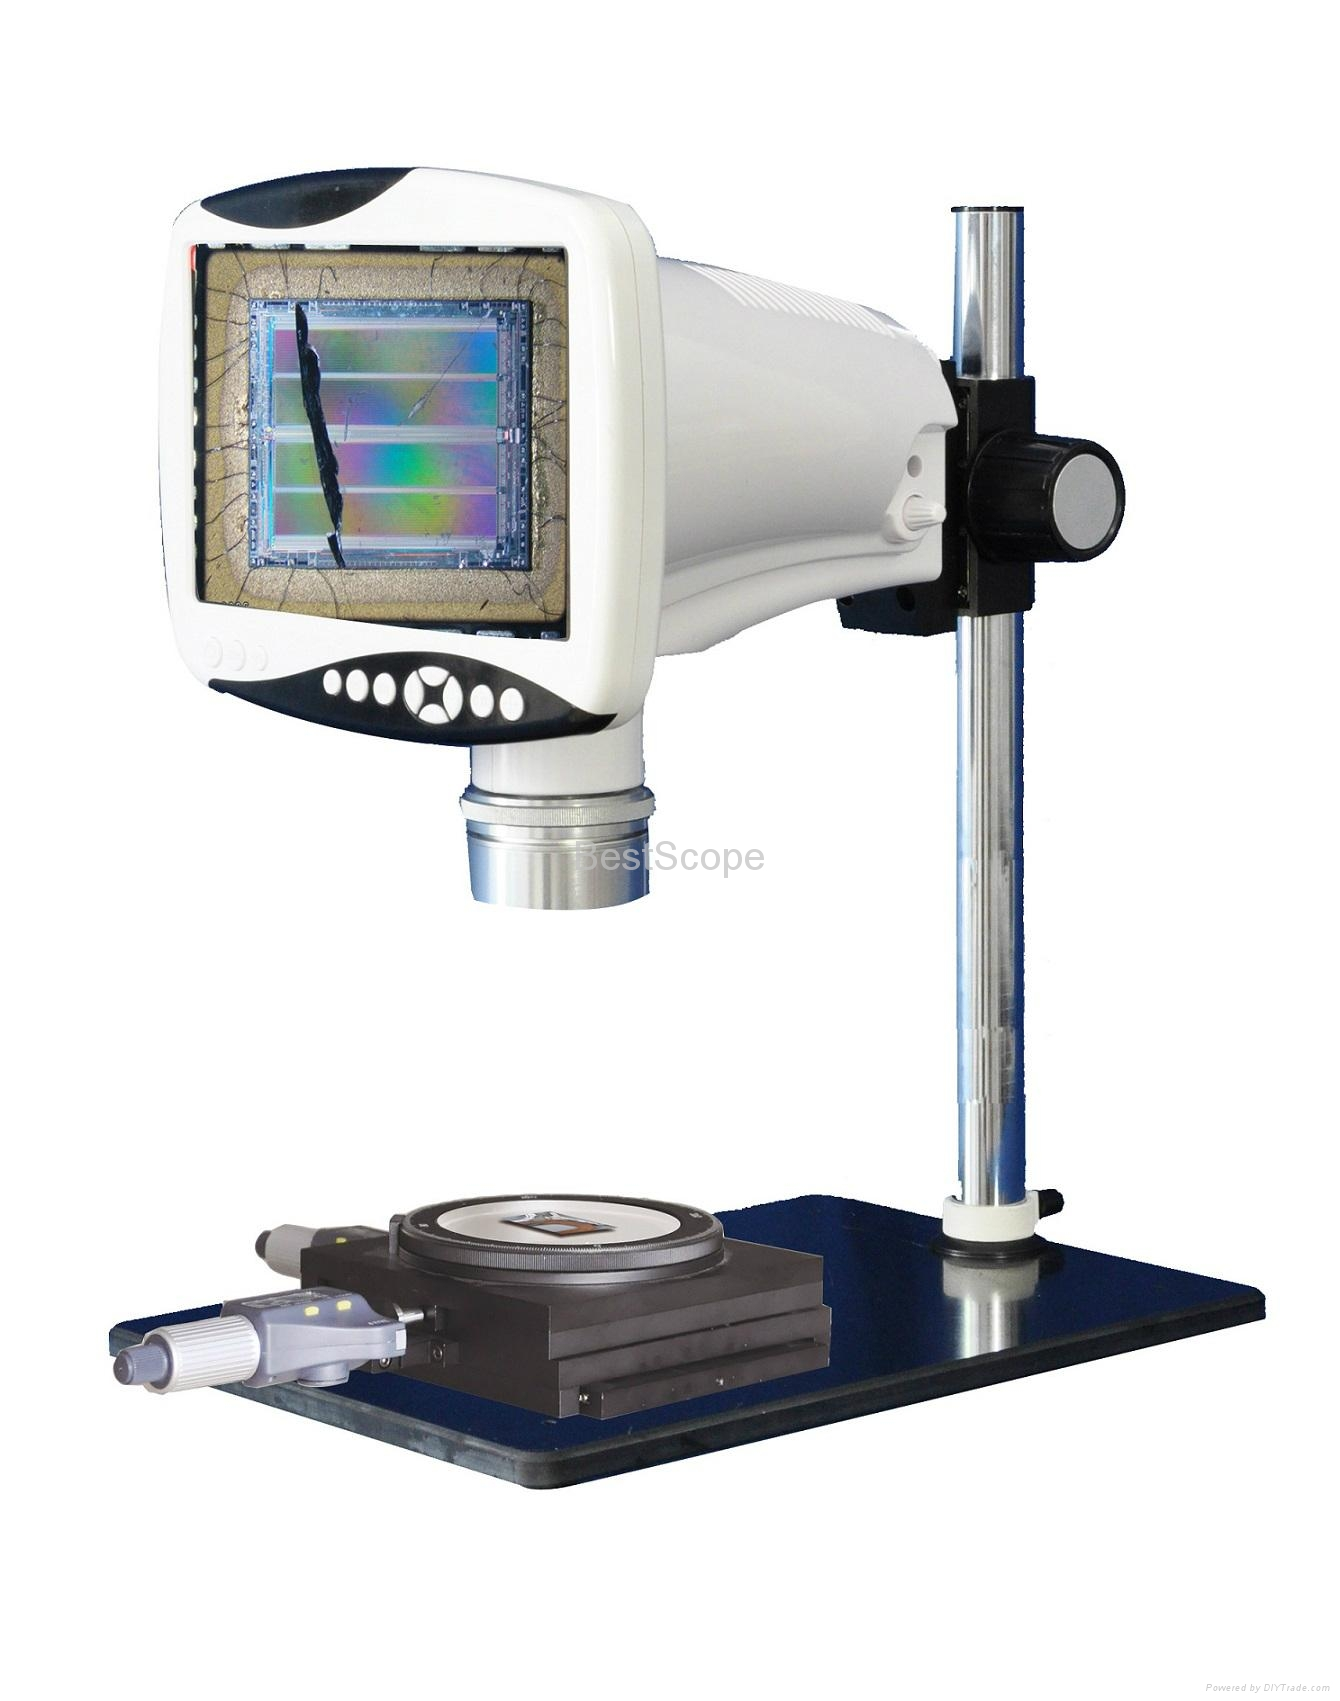 275 Best Lcd Unit Images On Pinterest: BestScope BLM-341M Digital LCD Stereo Measuring Microscope